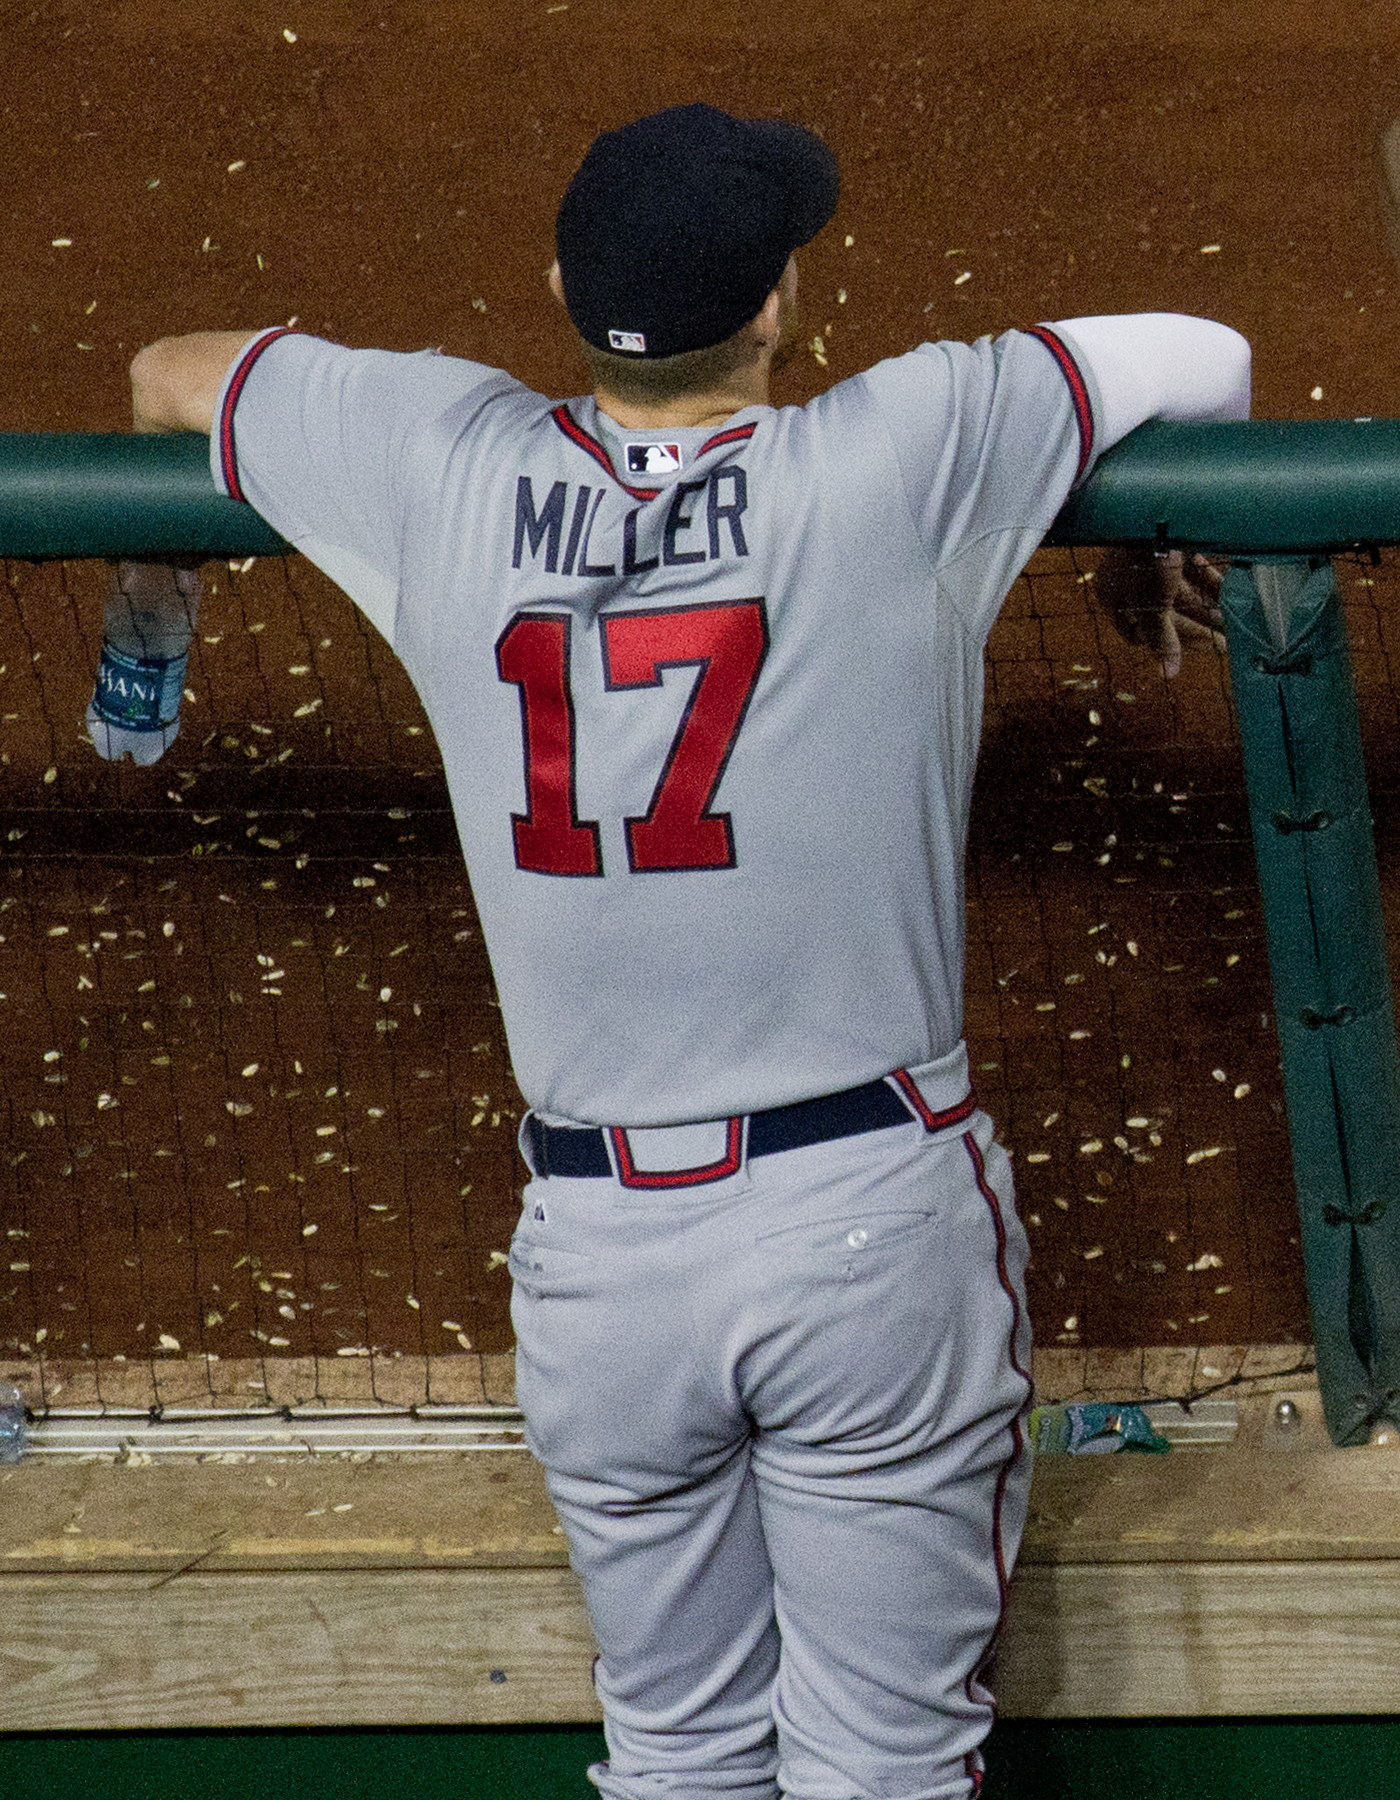 Report: Brewers to sign P Miller to minor league deal